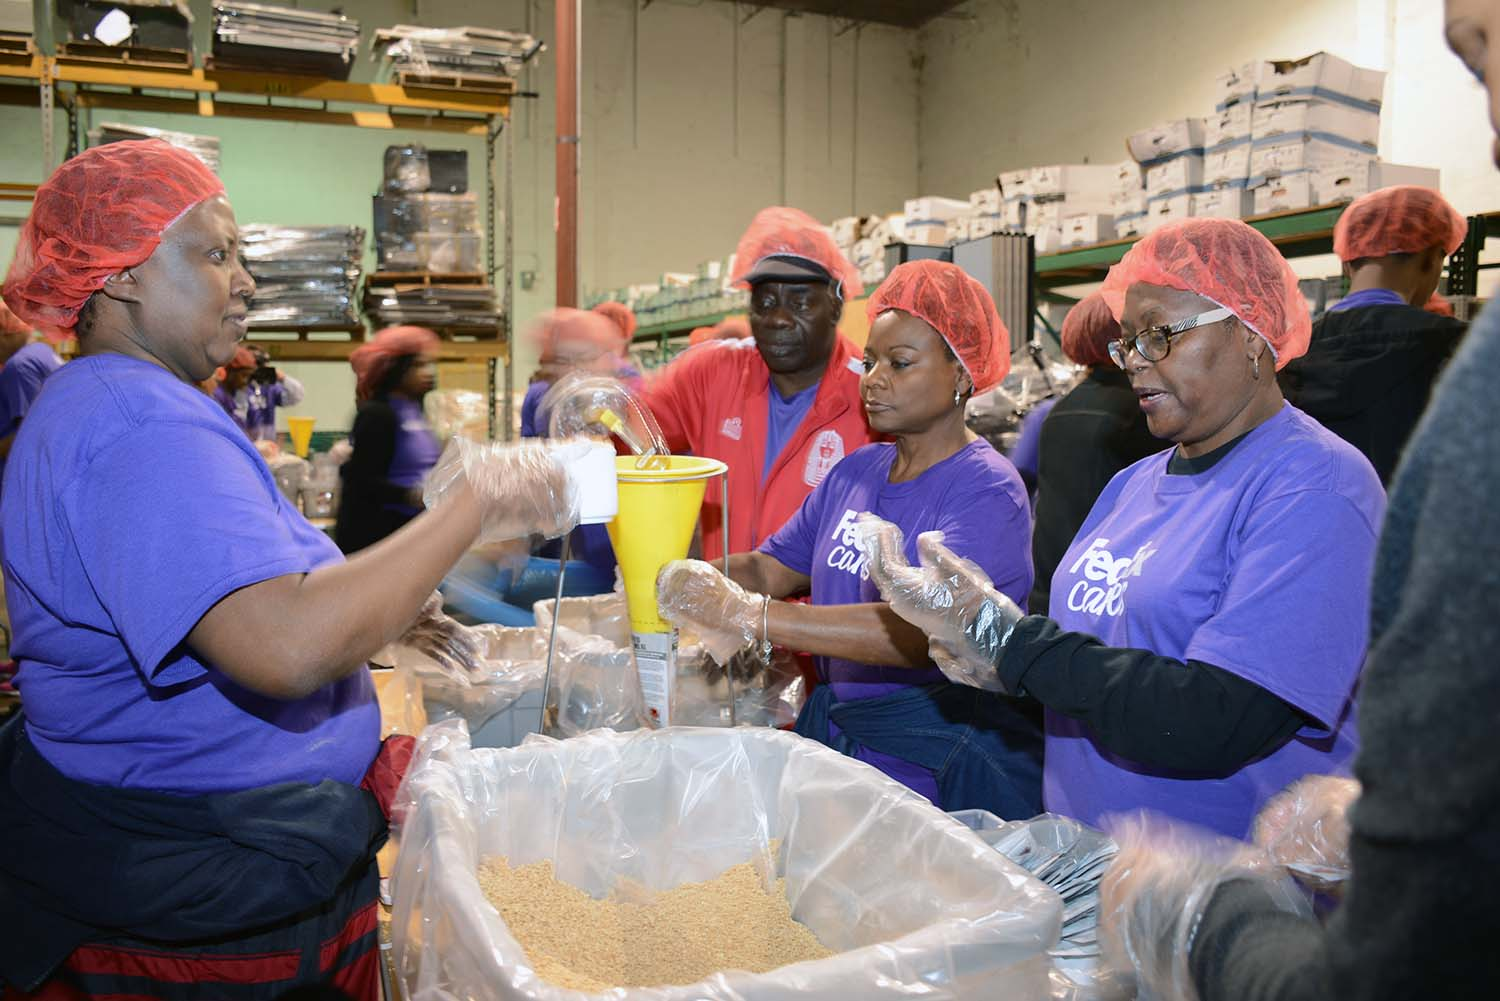 FedEx employees volunteering at Stop Hunger Now for MLK Day of Service